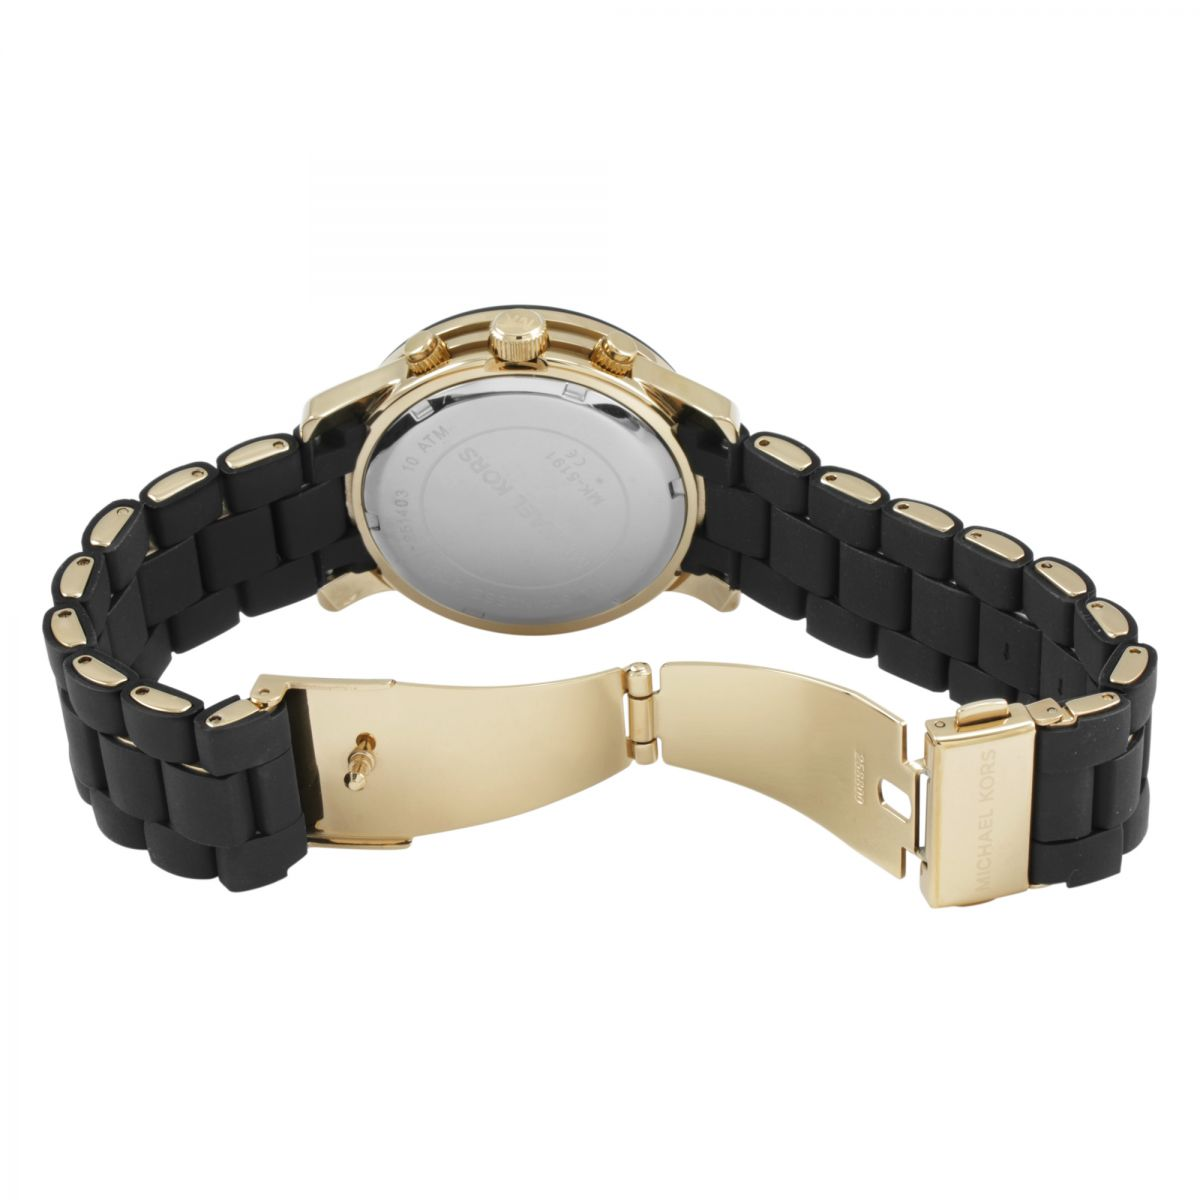 skagen designs case study What is you opinion of obaku watches  ideas from each others' designs apparently skagen also used comtech to  university business case study).